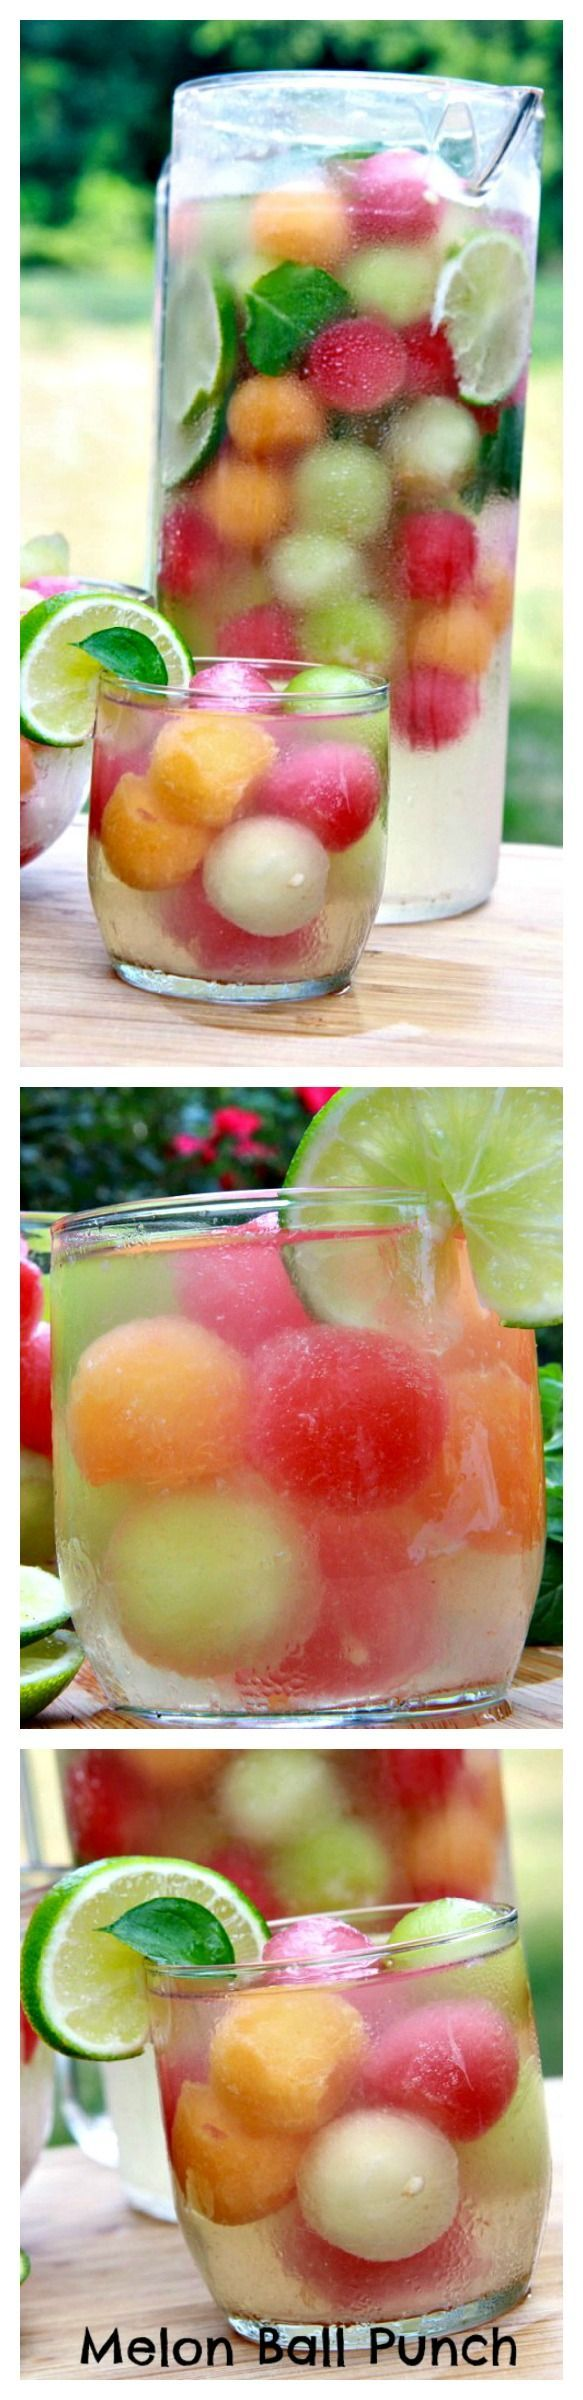 Refreshing Belly Slimming detox! This stuff is what summertime is made of! Fizzy, lightly sweetened and full of melon flavor! #PAMACelebrateSummer